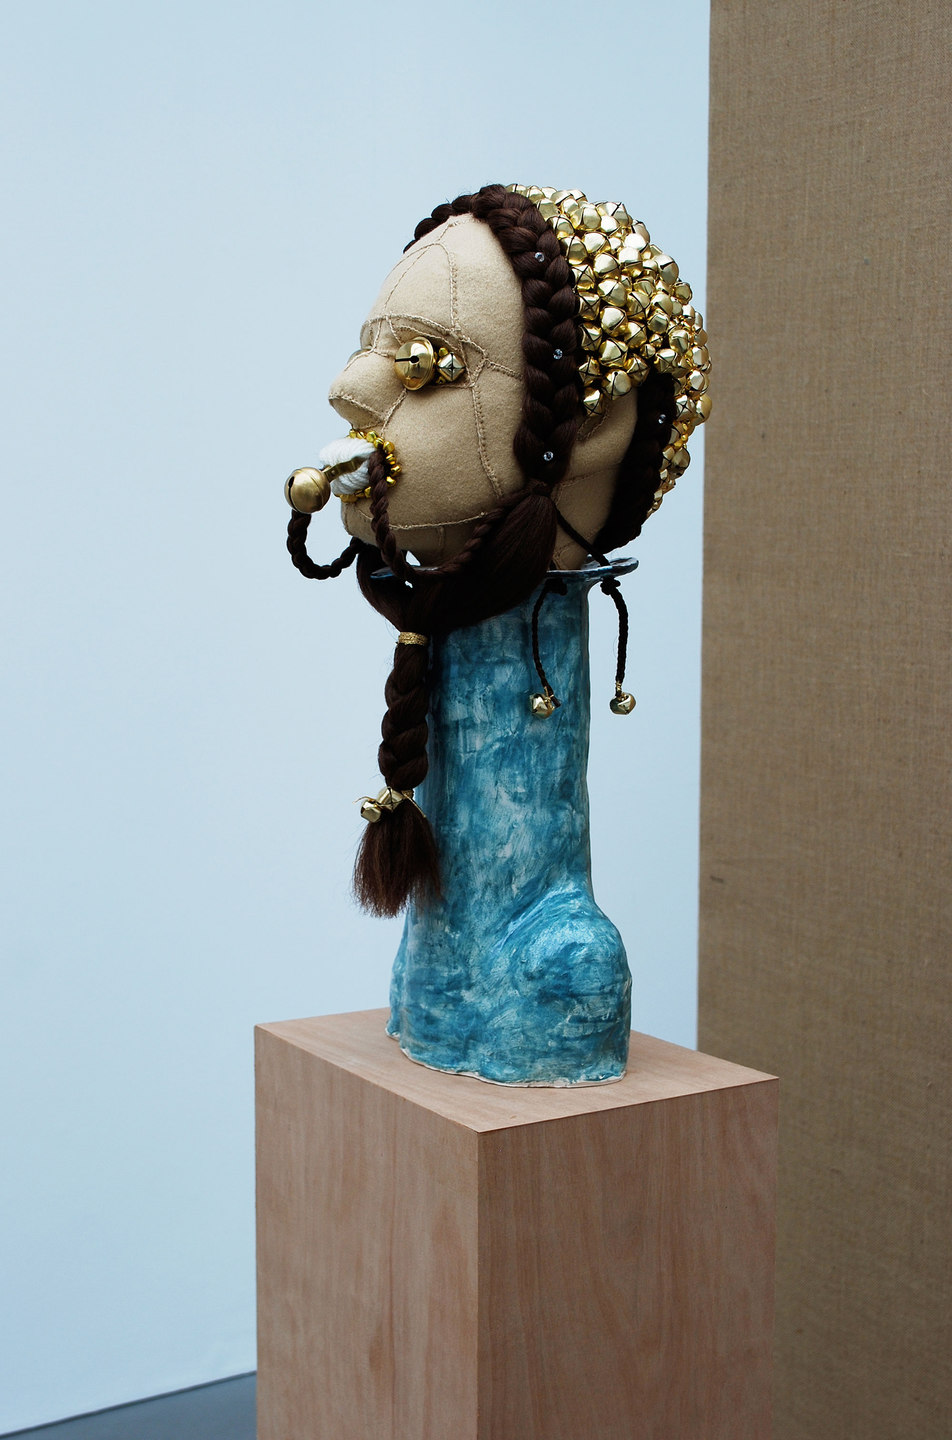 Jonathan Baldock, Regality (The Fair), 2010, Felt, ceramic, bells, synthetic hair,foam, pins, wool, thread.(h.1820mm x w.230mm x d.300mm), Cell Project Space